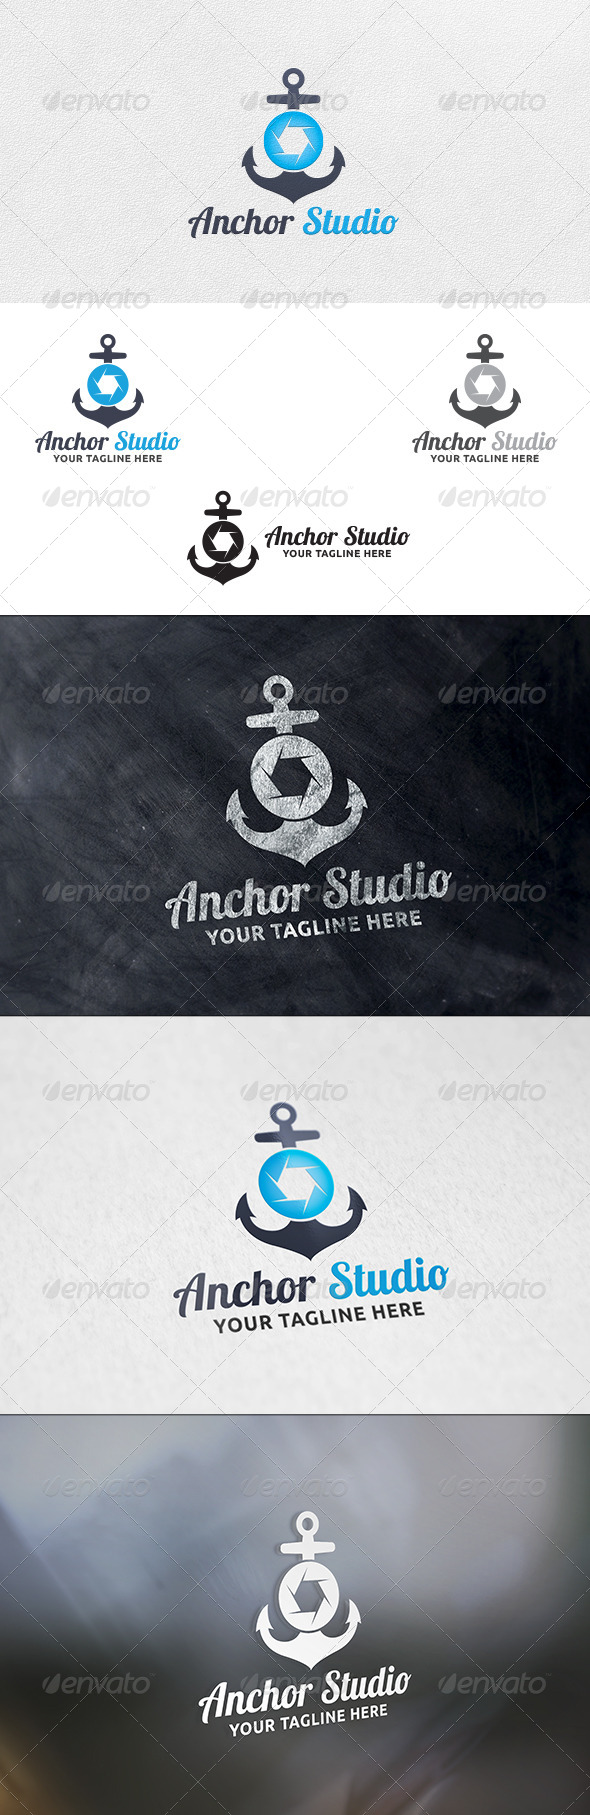 GraphicRiver Anchor Studio Logo Template 6317153